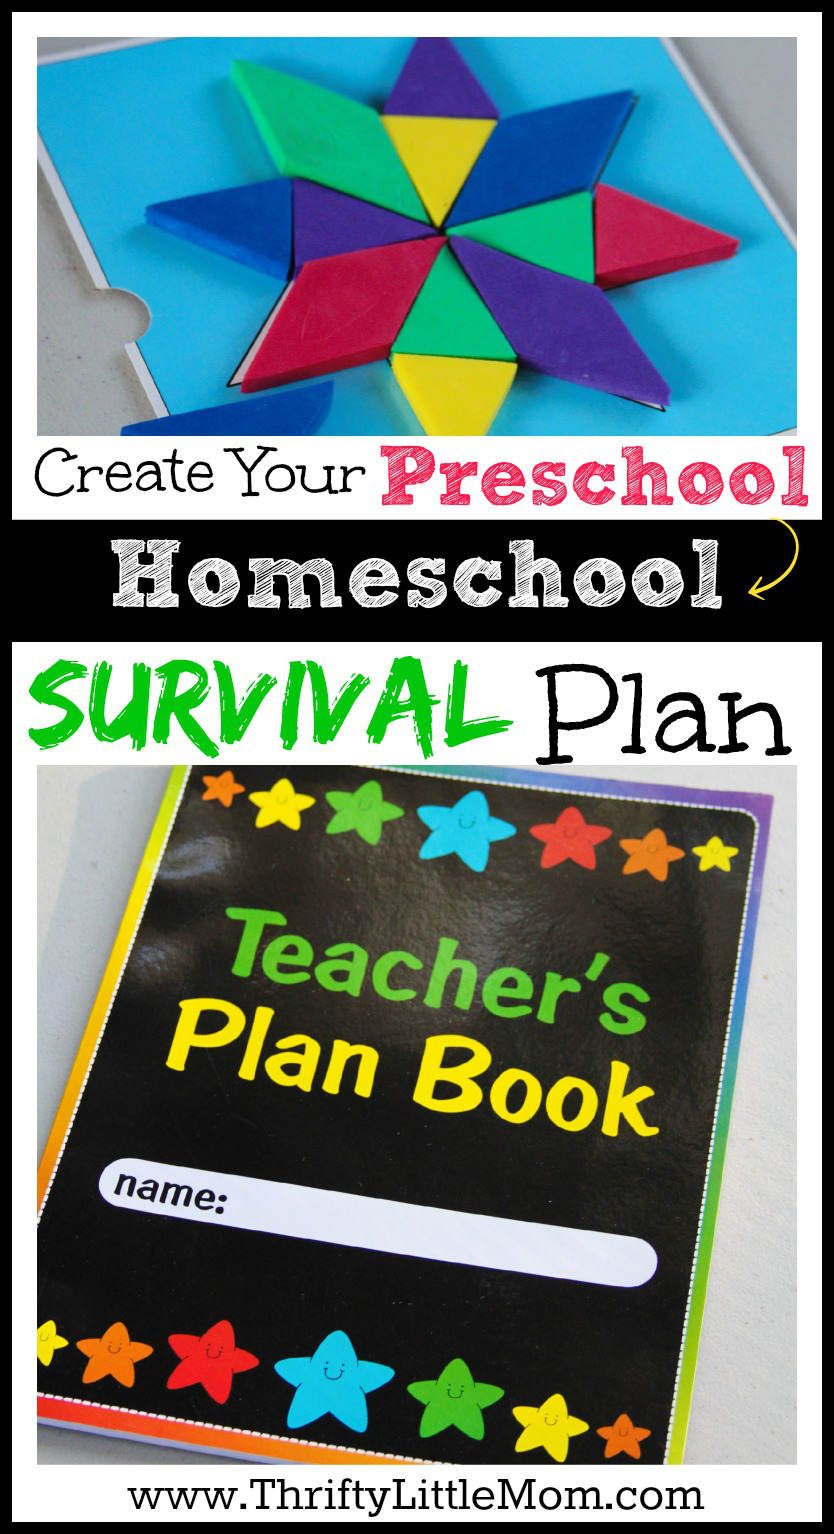 Create Your Preschool Homeschool Survival Plan